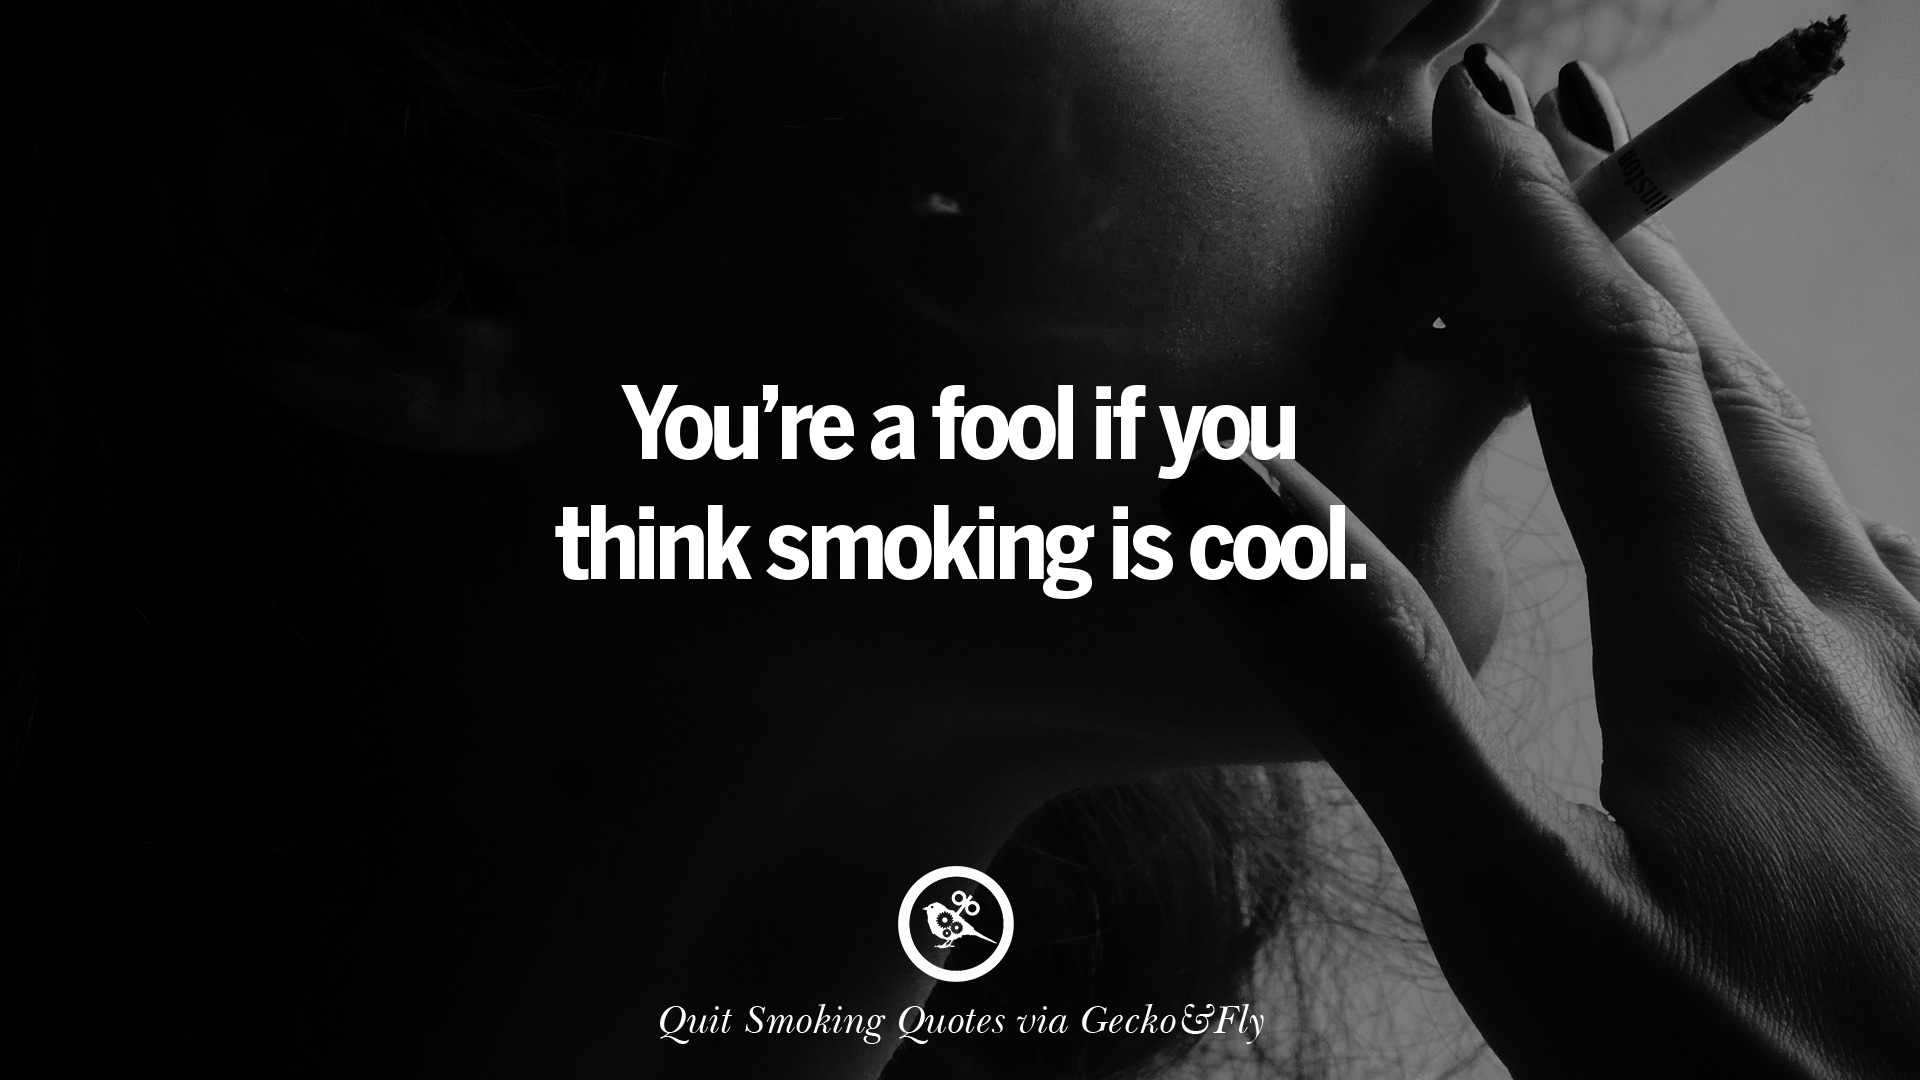 Smoking Quotes Simple 20 Motivational Slogans To Help You Quit Smoking And Stop Lungs